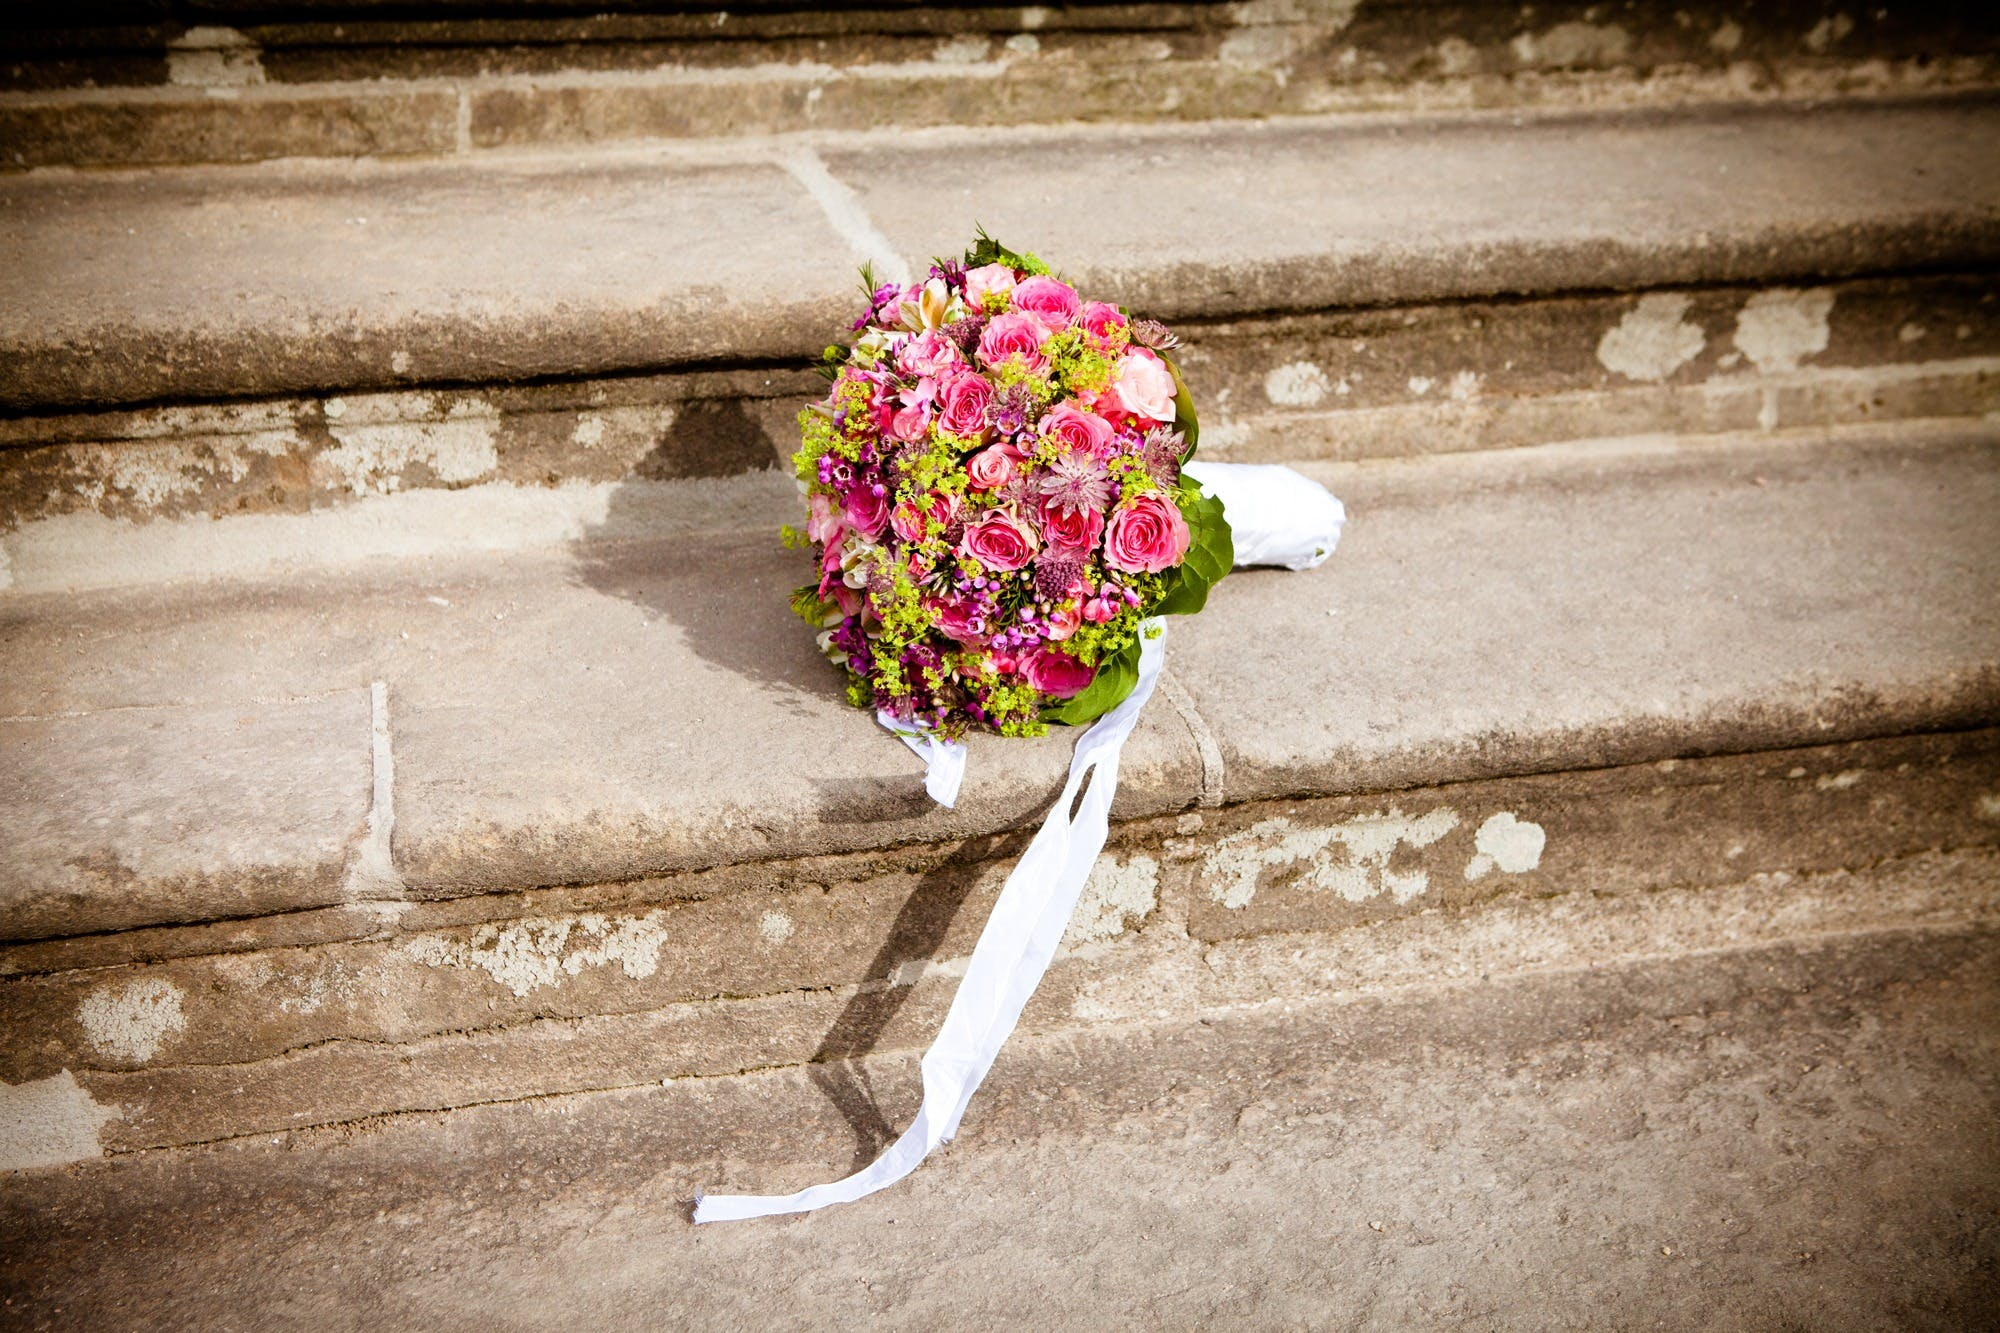 Flower Bouquet on Stairs during Daytime